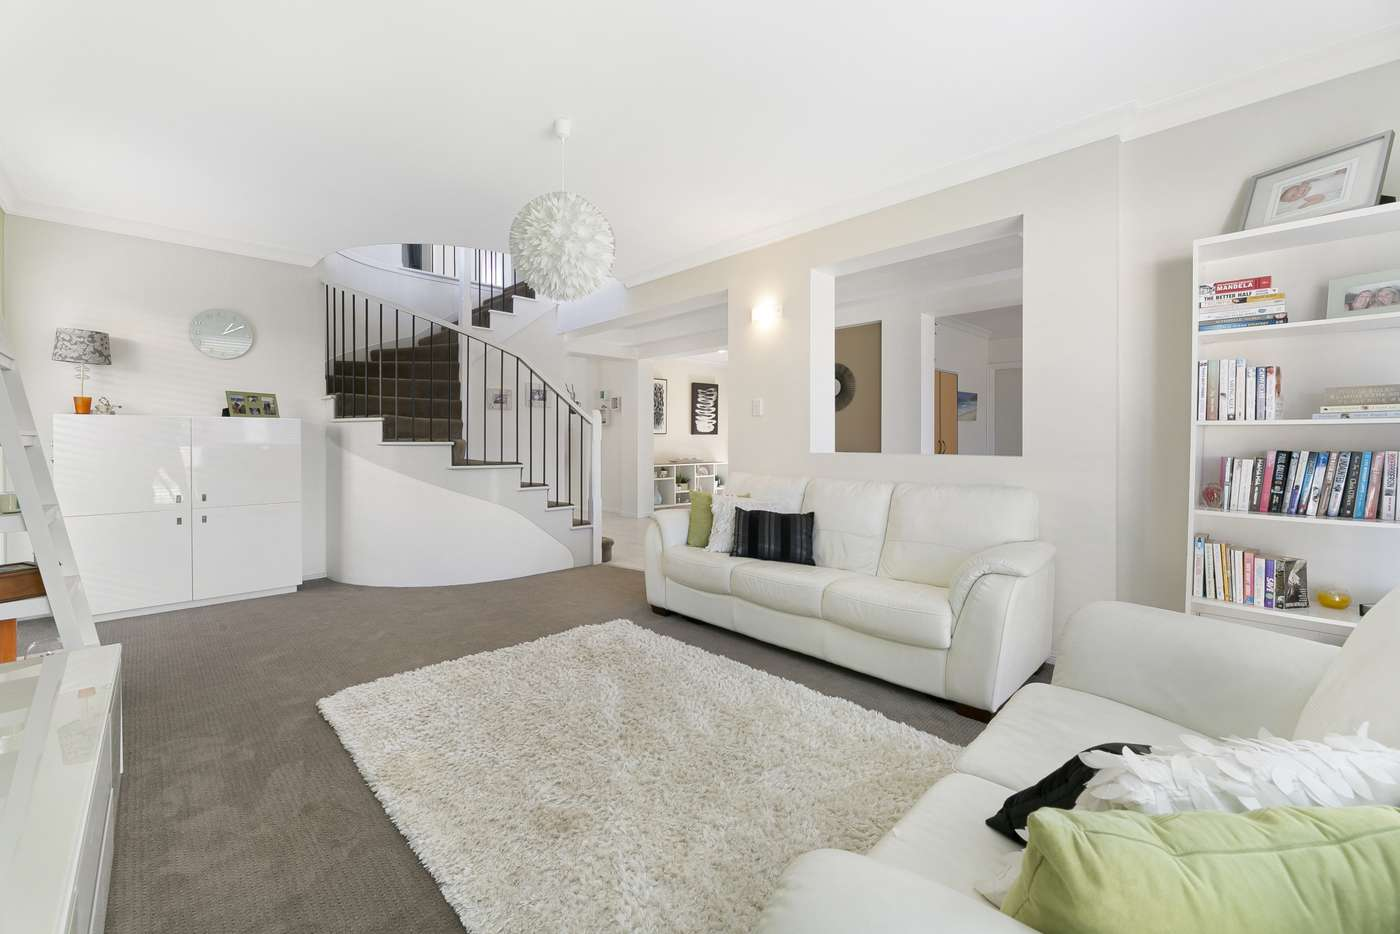 Fifth view of Homely house listing, 30 Islander Court, Burleigh Waters QLD 4220